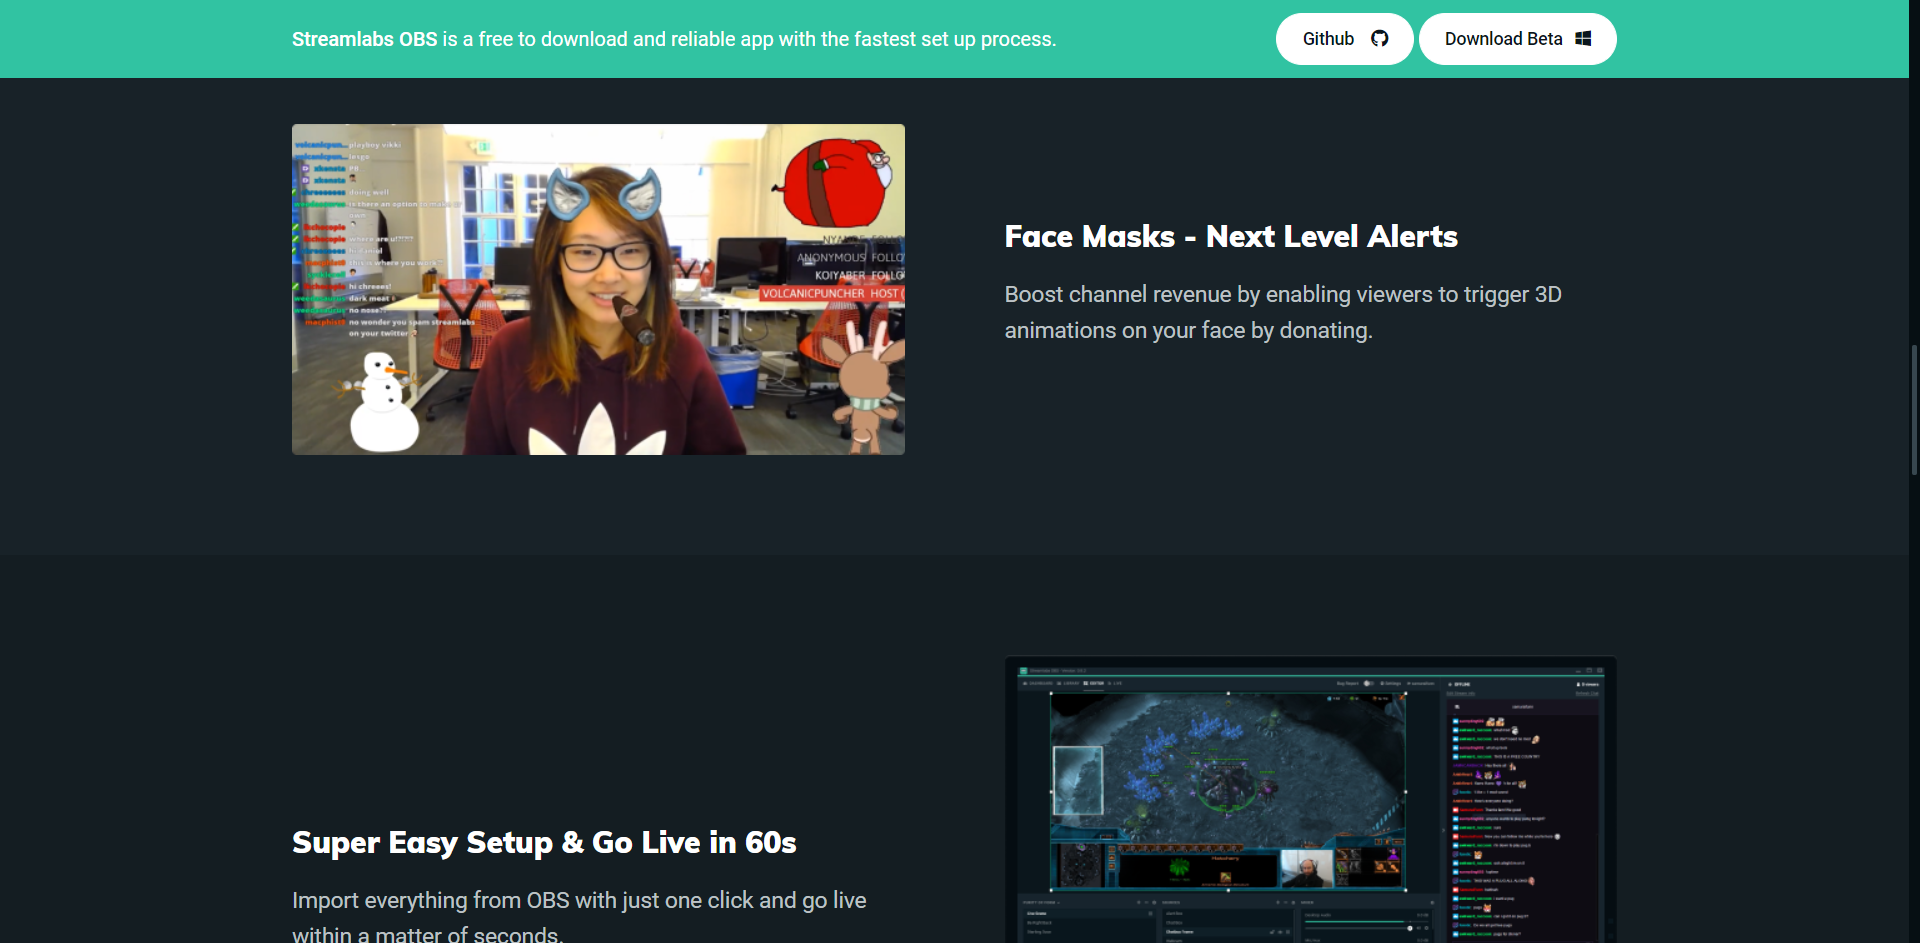 Streamlabs OBS | Download #1 Open Broadcaster Software for